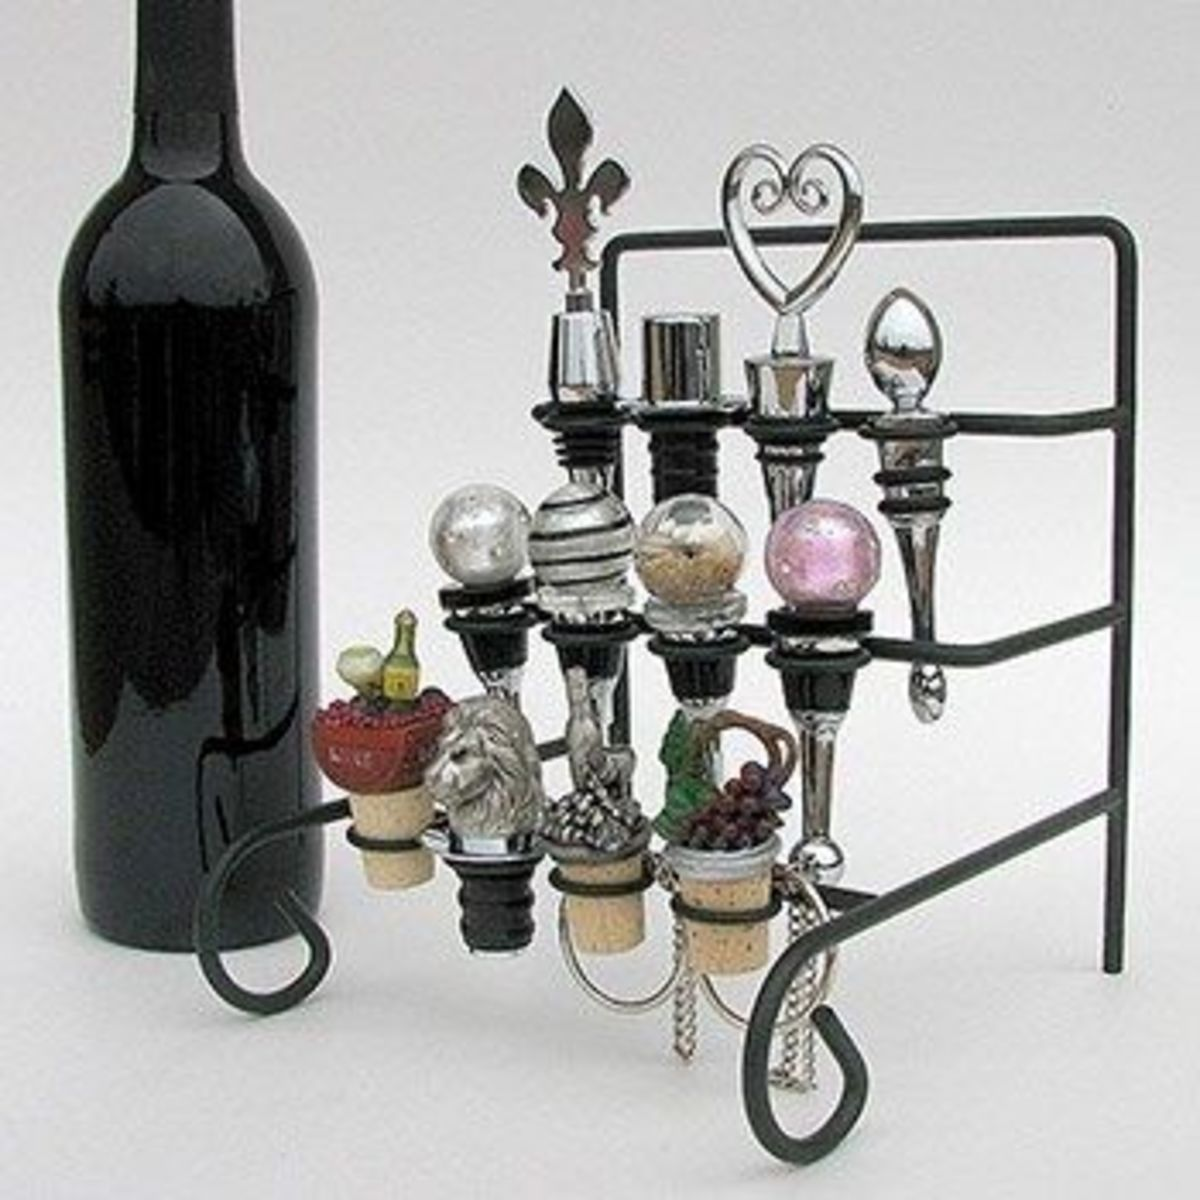 Wine Bottle Stopper Display Rack or Stopper Stand